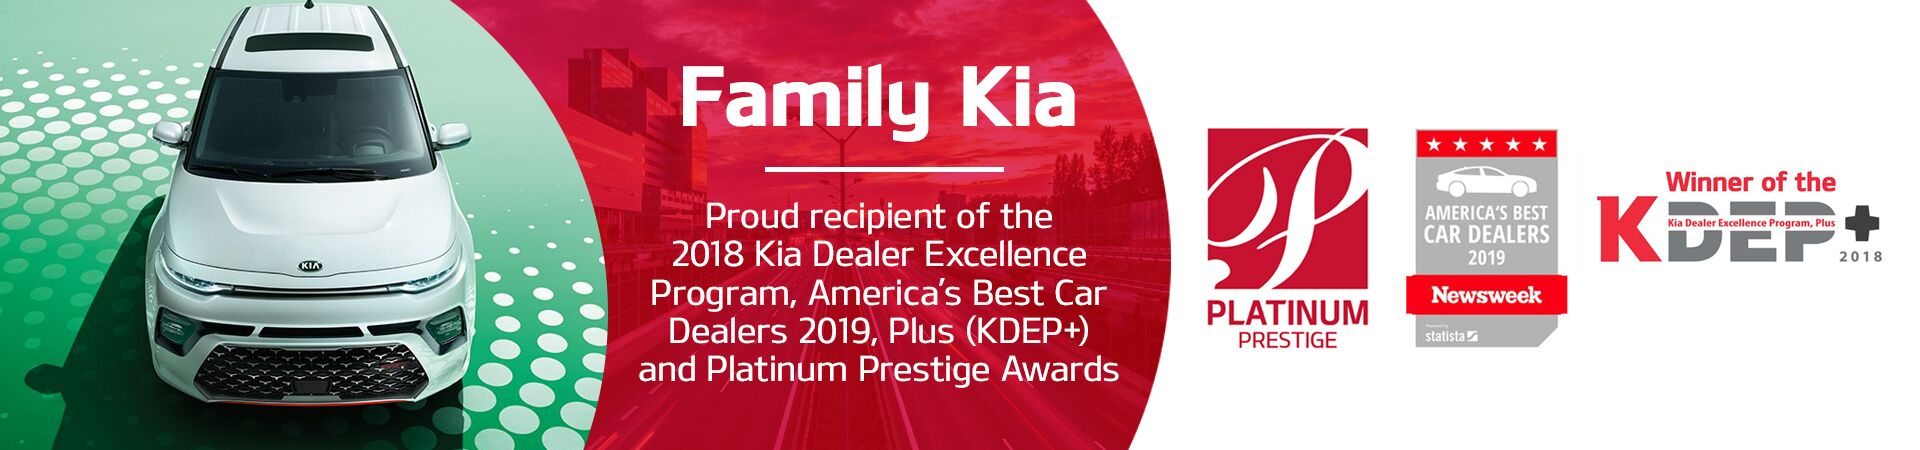 Family Kia of St. Augustine FL awards and accolades